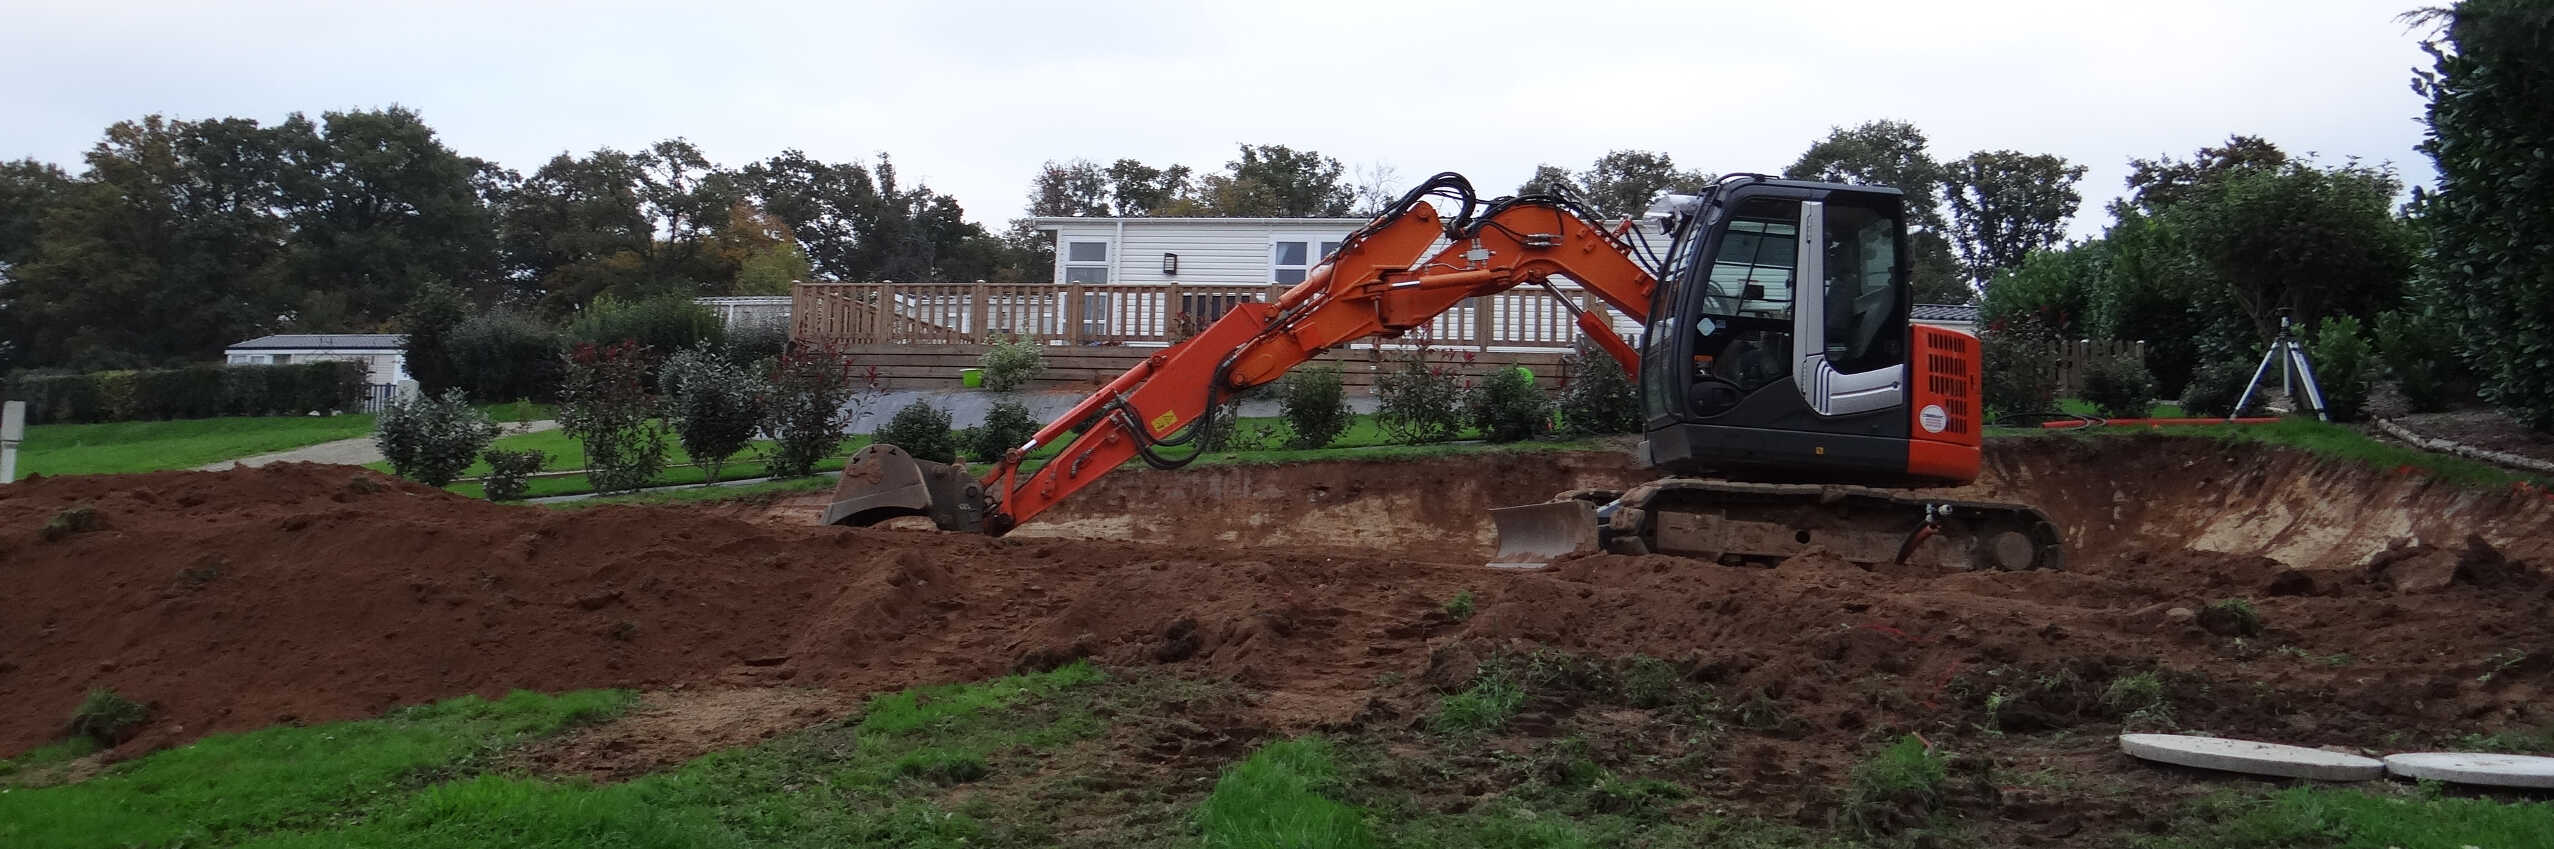 Photo of an orange digger moving earth in front of some park homes at Parc Mayenne.